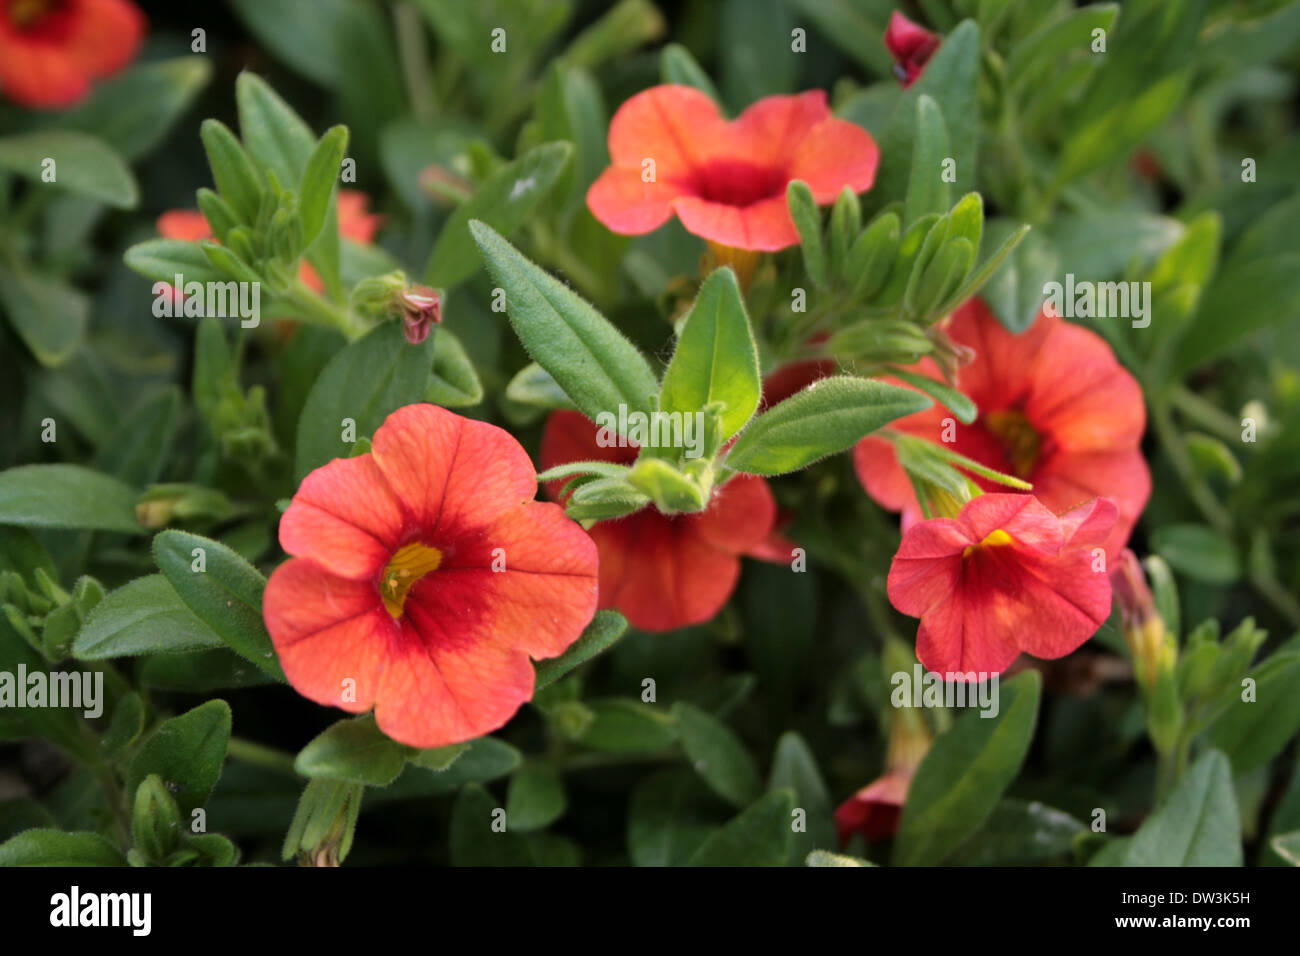 Soft Red Flowers With Yellow Center And Green Leaves July In The